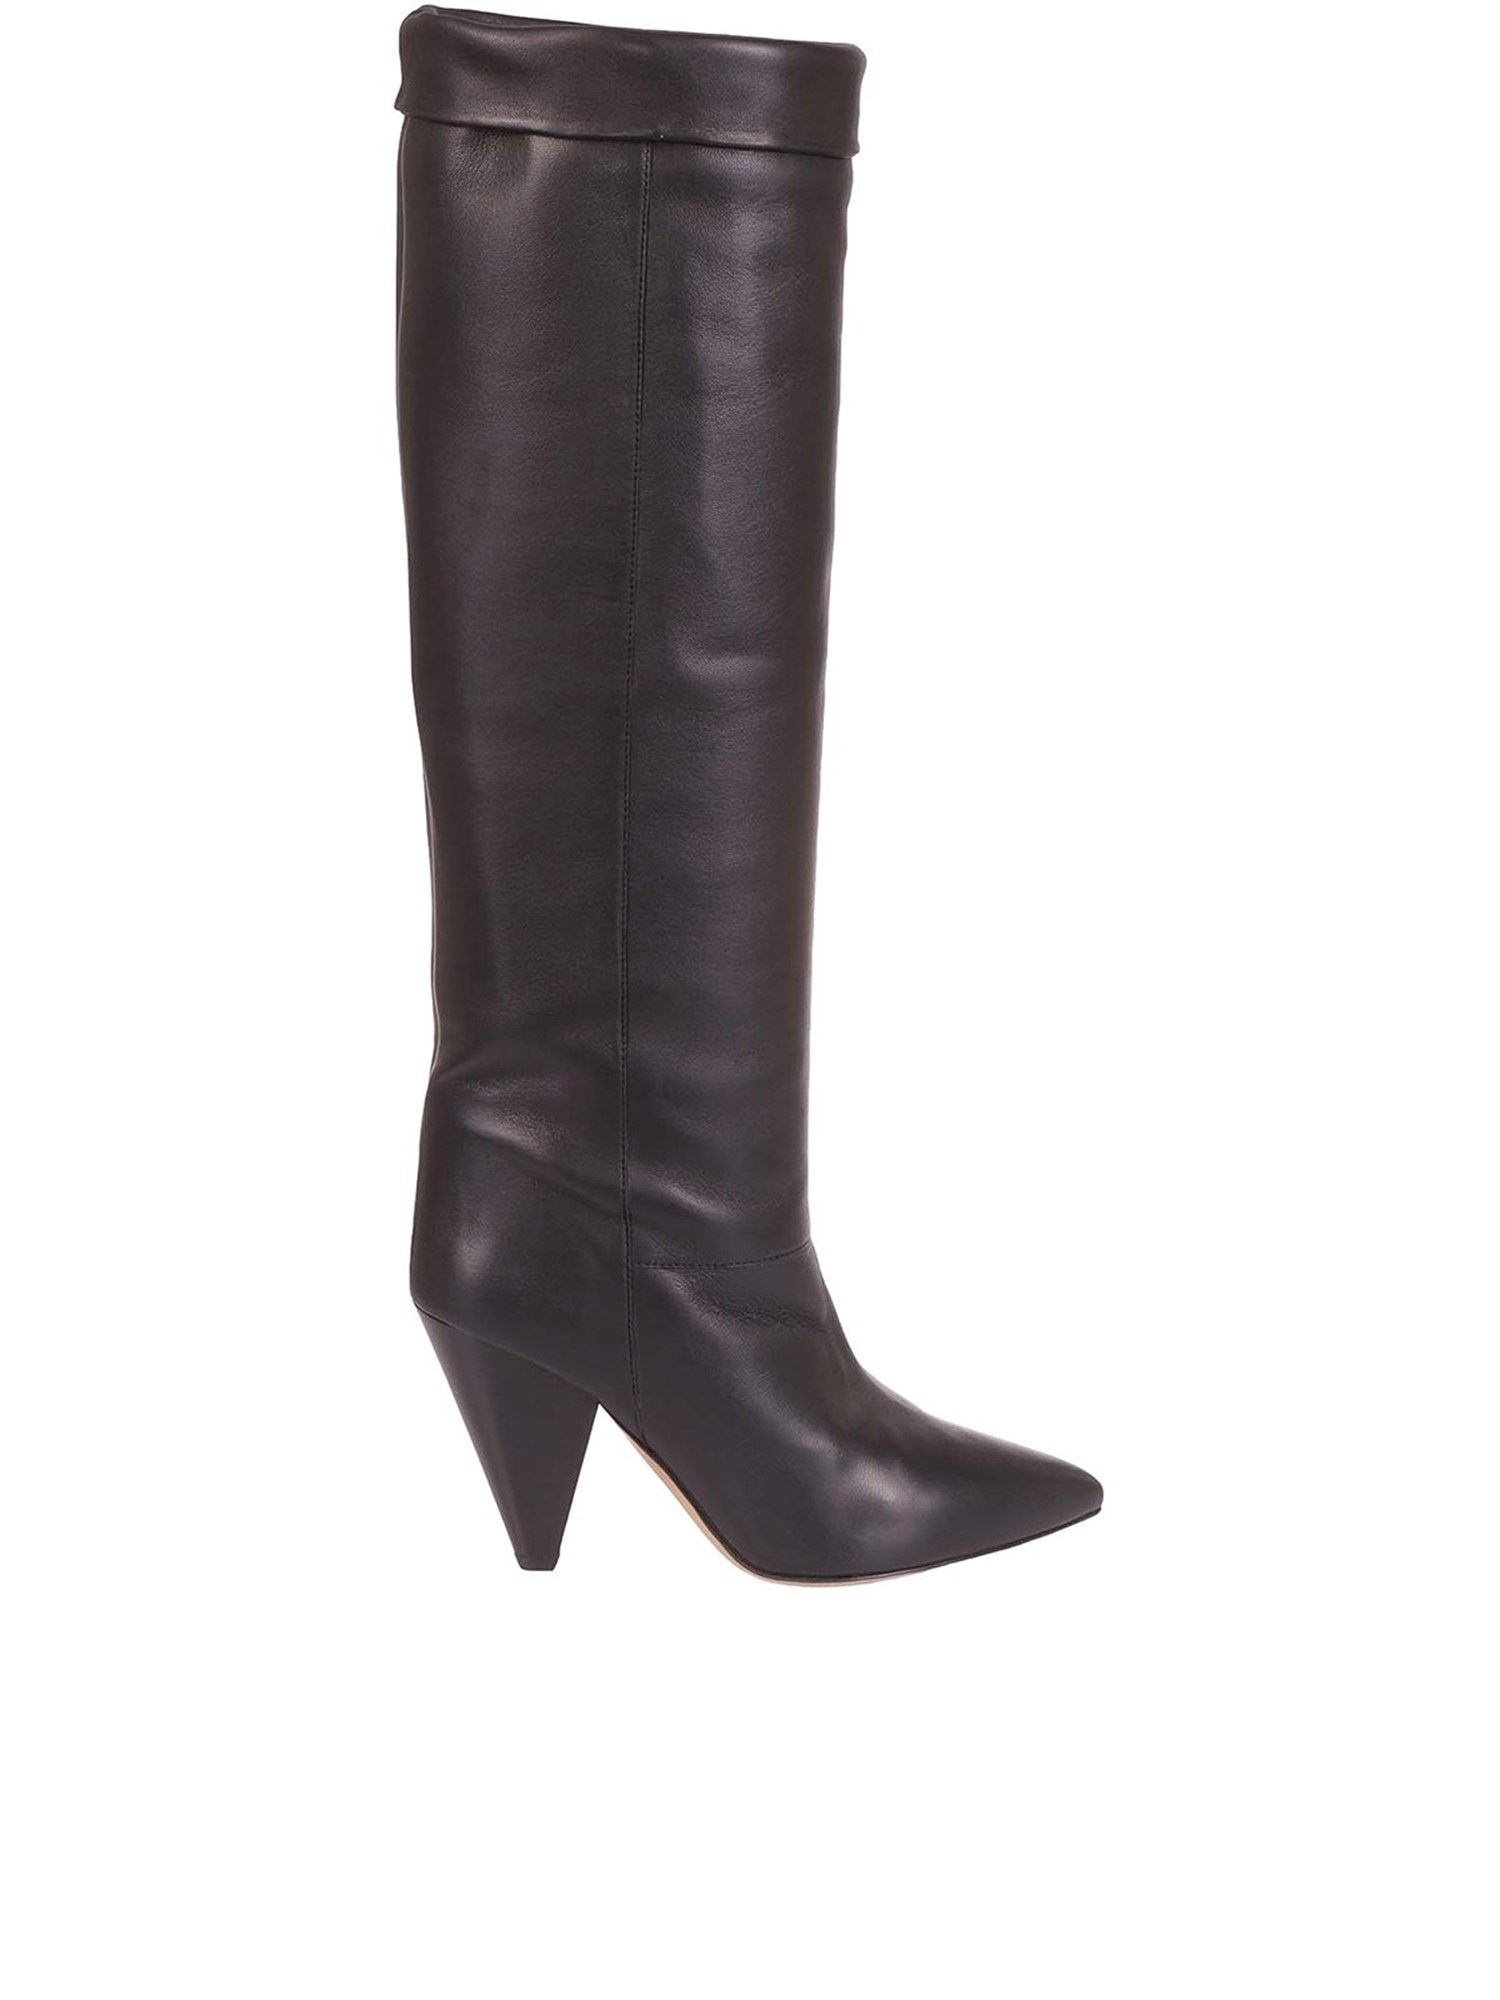 Isabel Marant Leathers ISABEL MARANT LOENS BOOTS IN BLACK